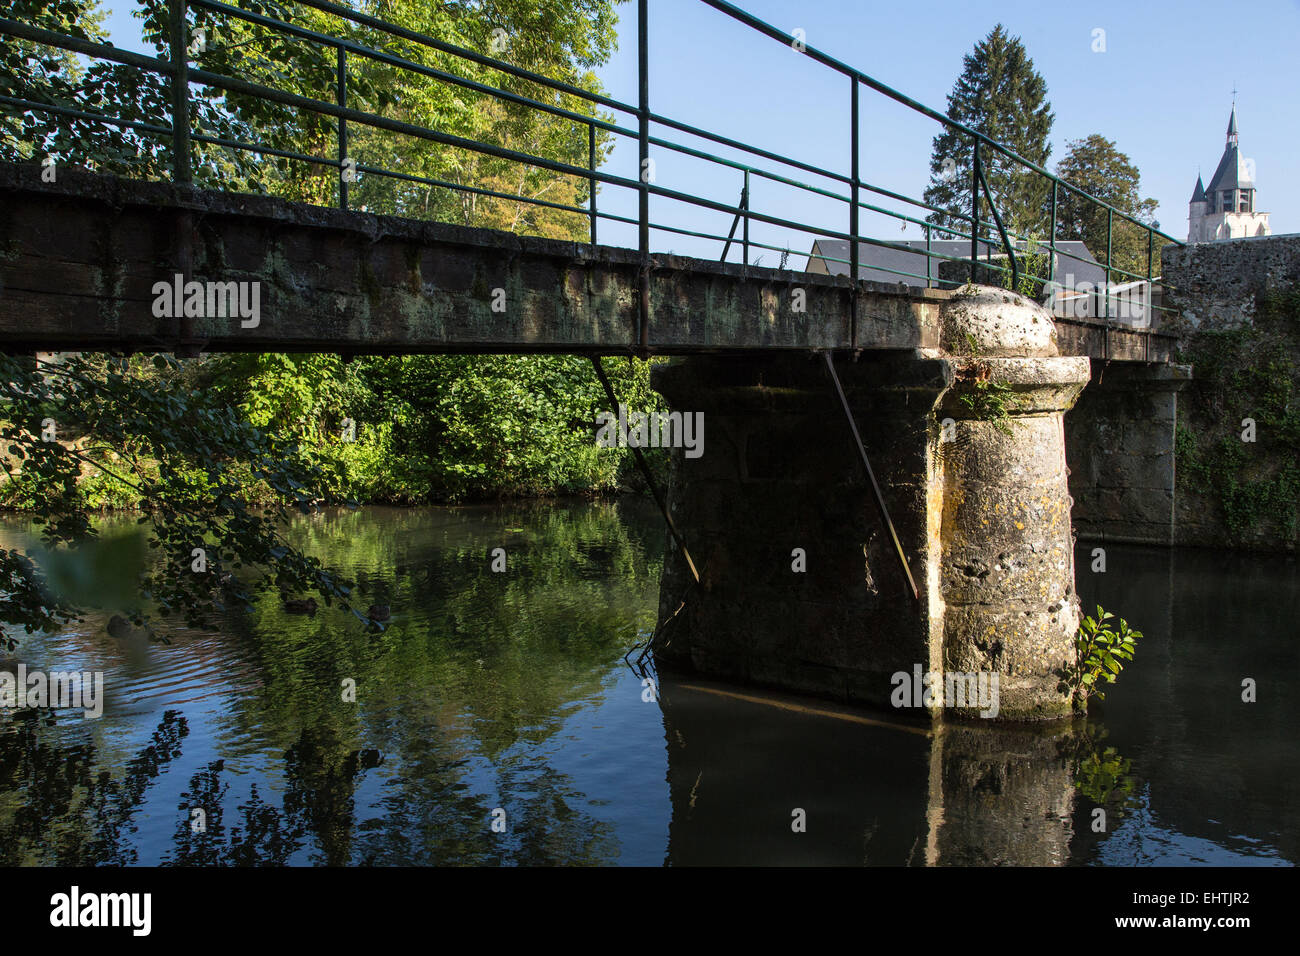 ILLIERS-COMBRAY, IN THE FOOTSTEPS OF MARCEL PROUST, EURE-ET-LOIR (28), FRANCE - Stock Image